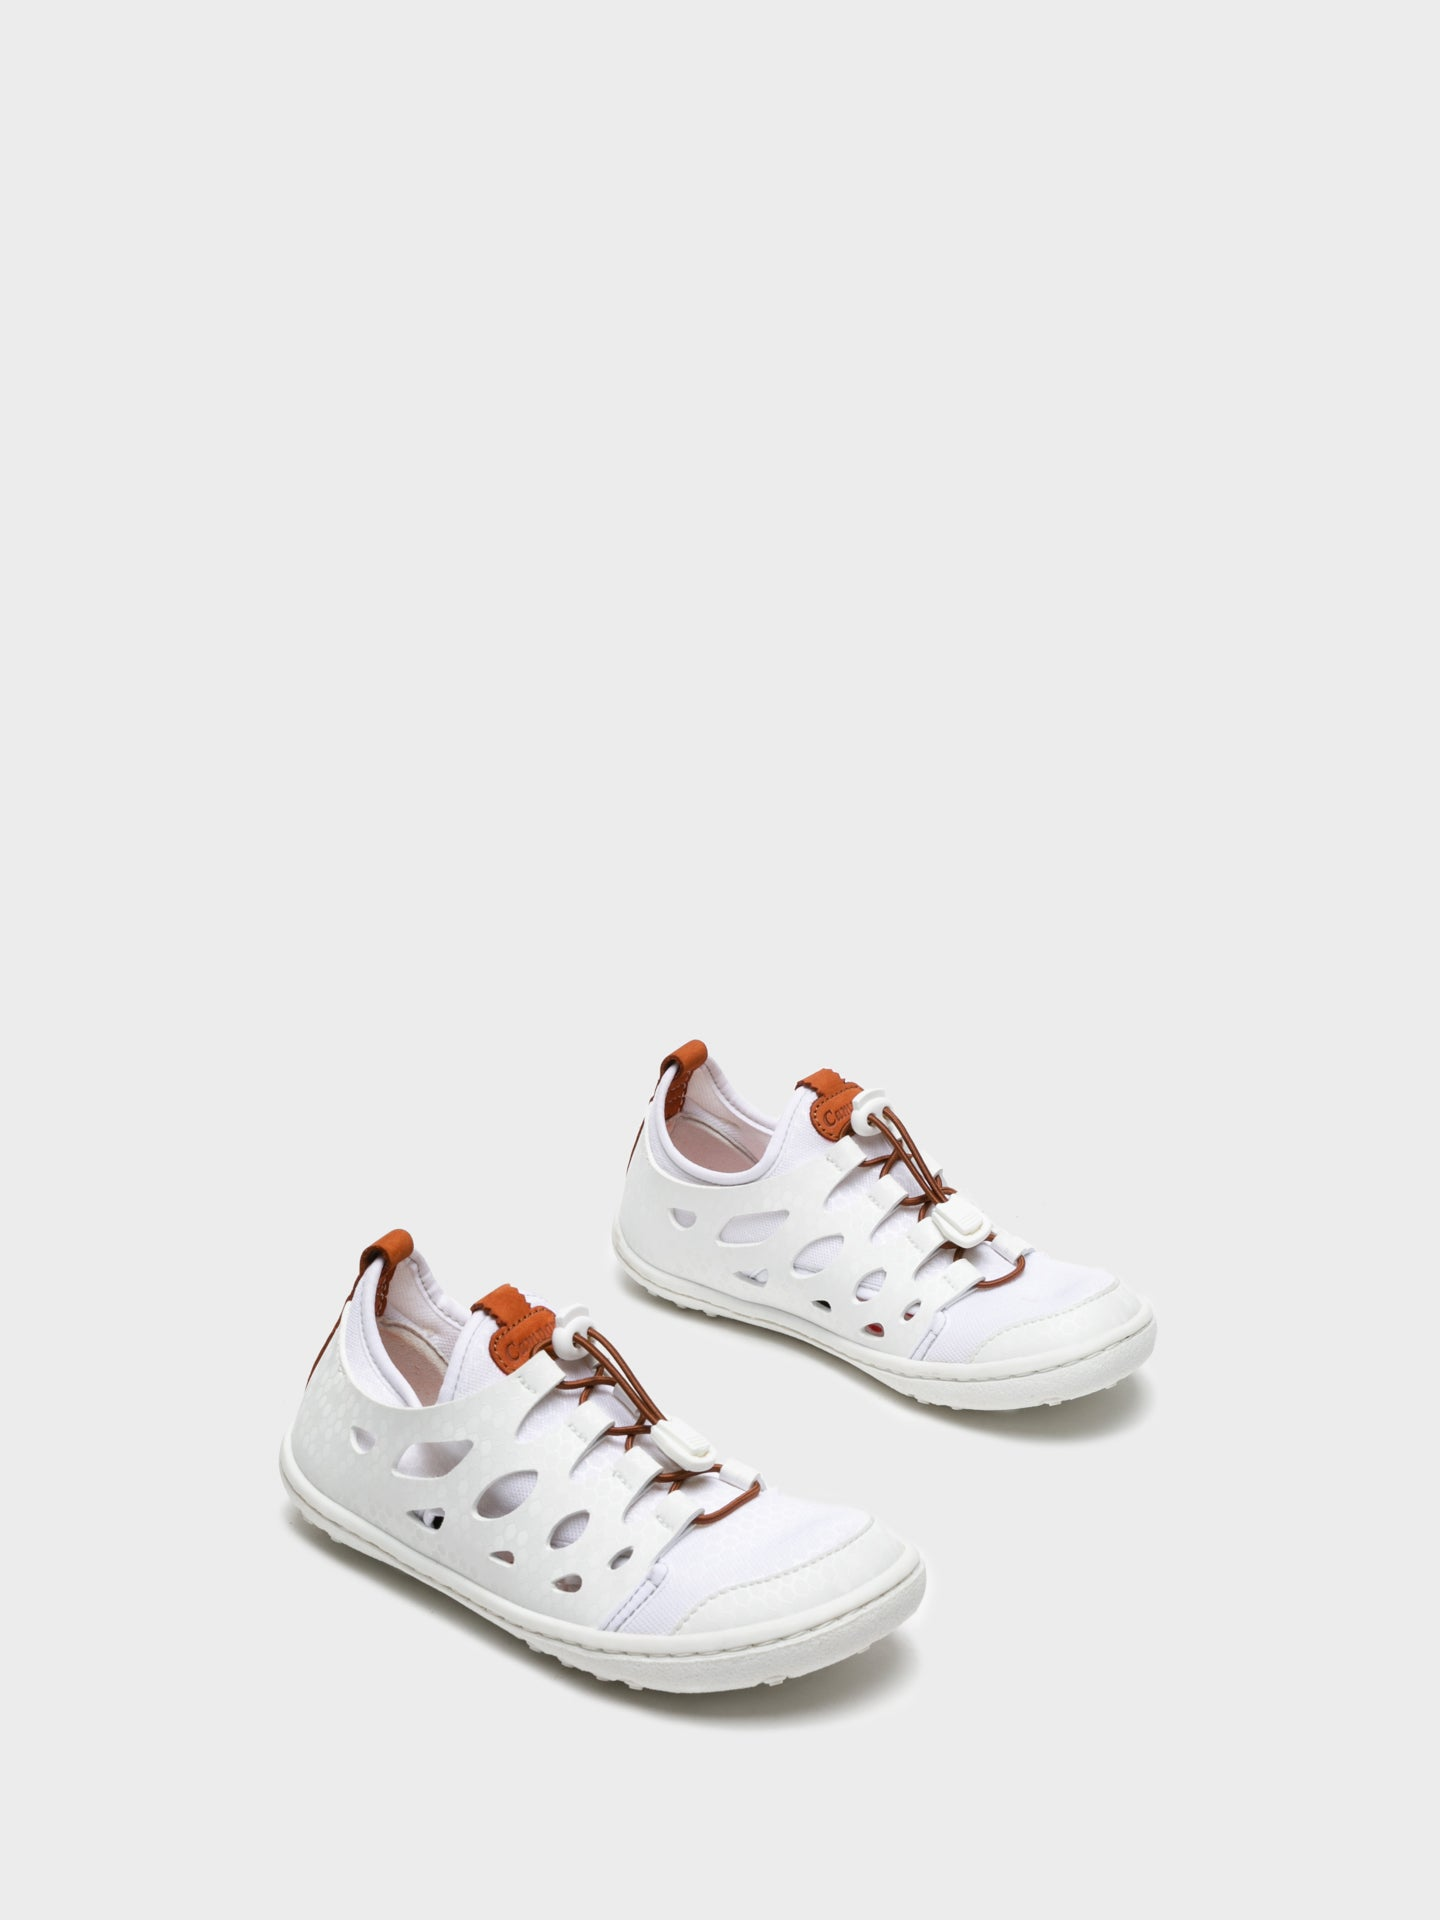 Camport White Lace-up Trainers